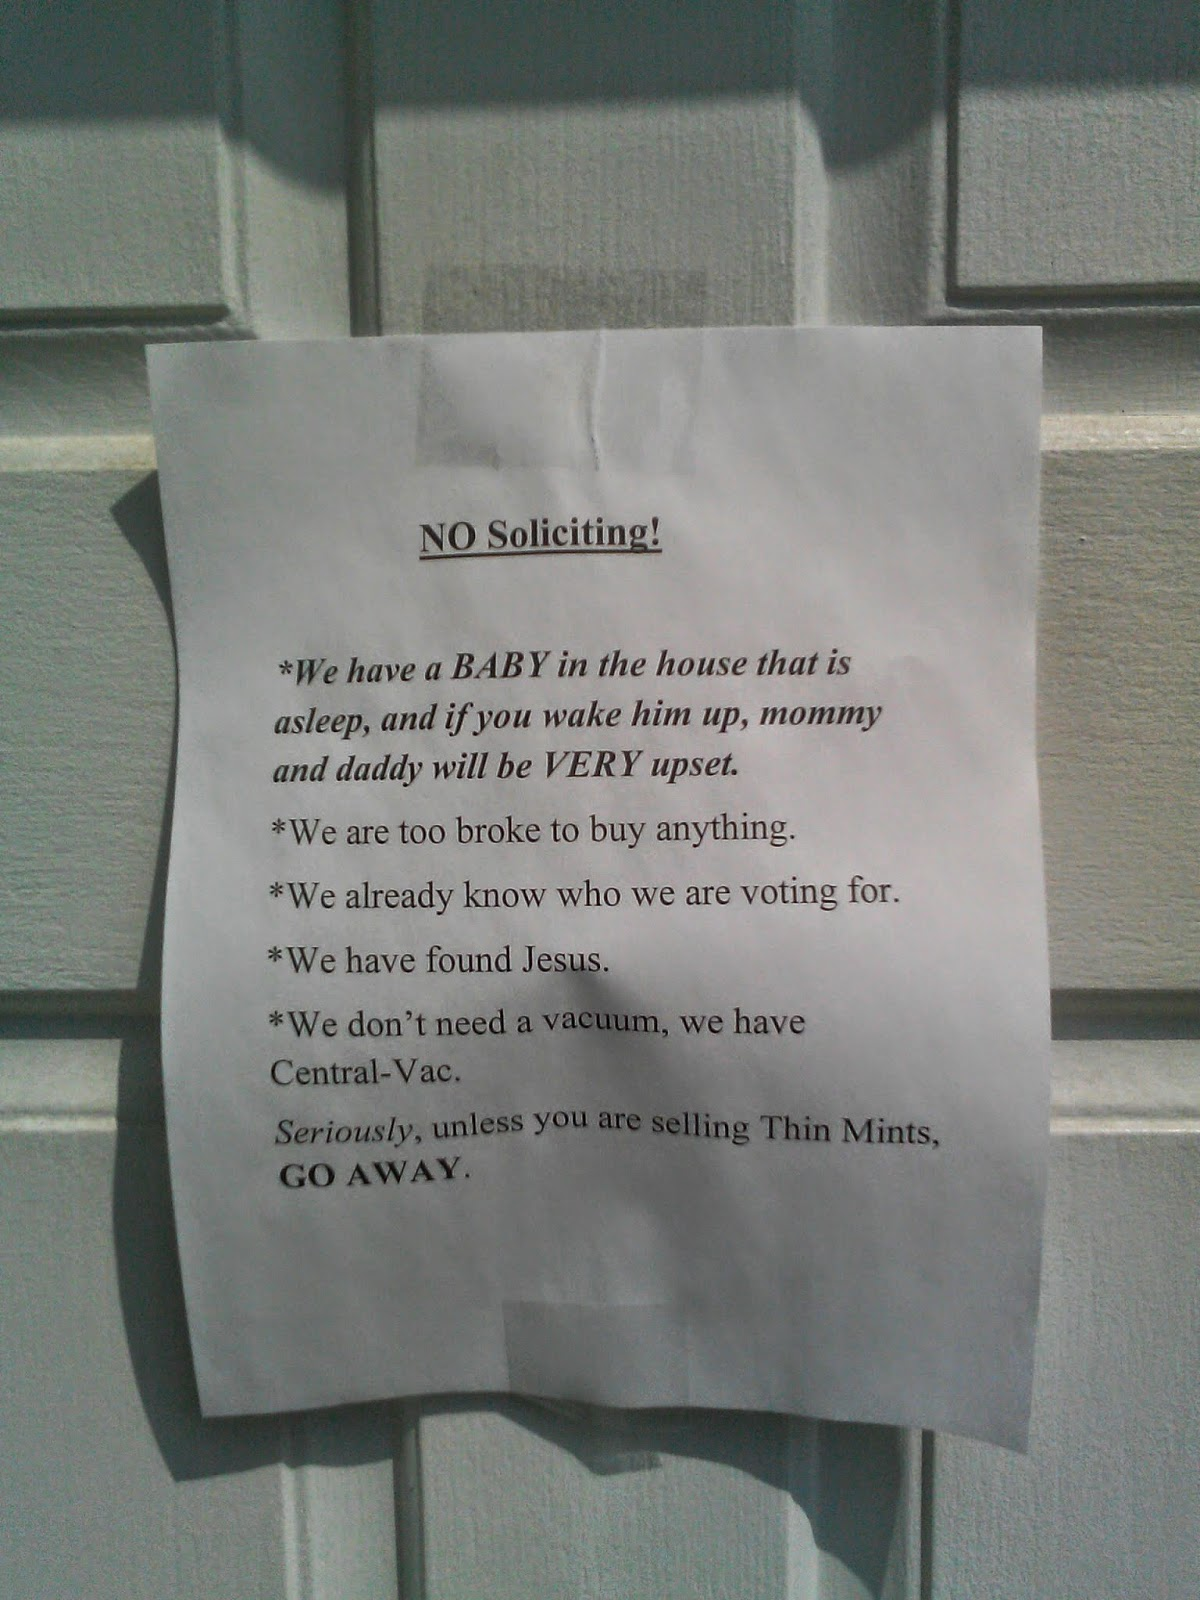 This family is too broke to buy anything except thin mints - Funny soliciting signs ...